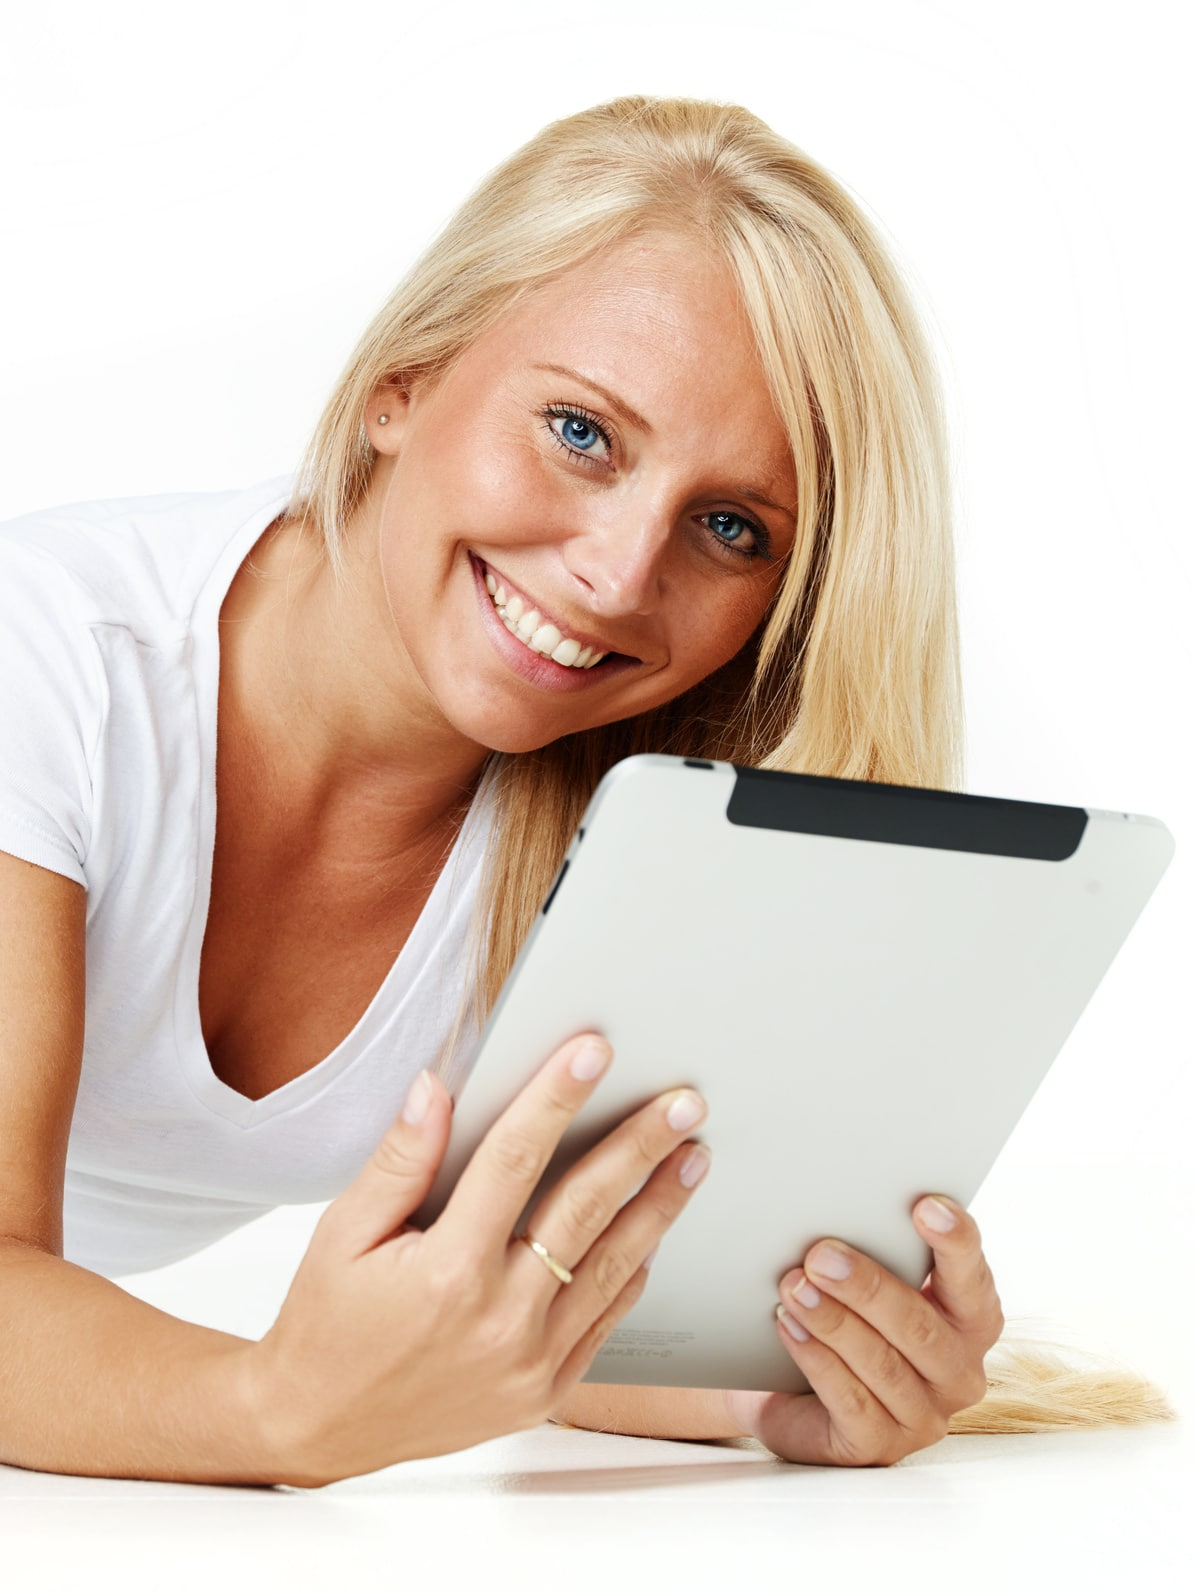 Nice women working with tablet pc on the floor